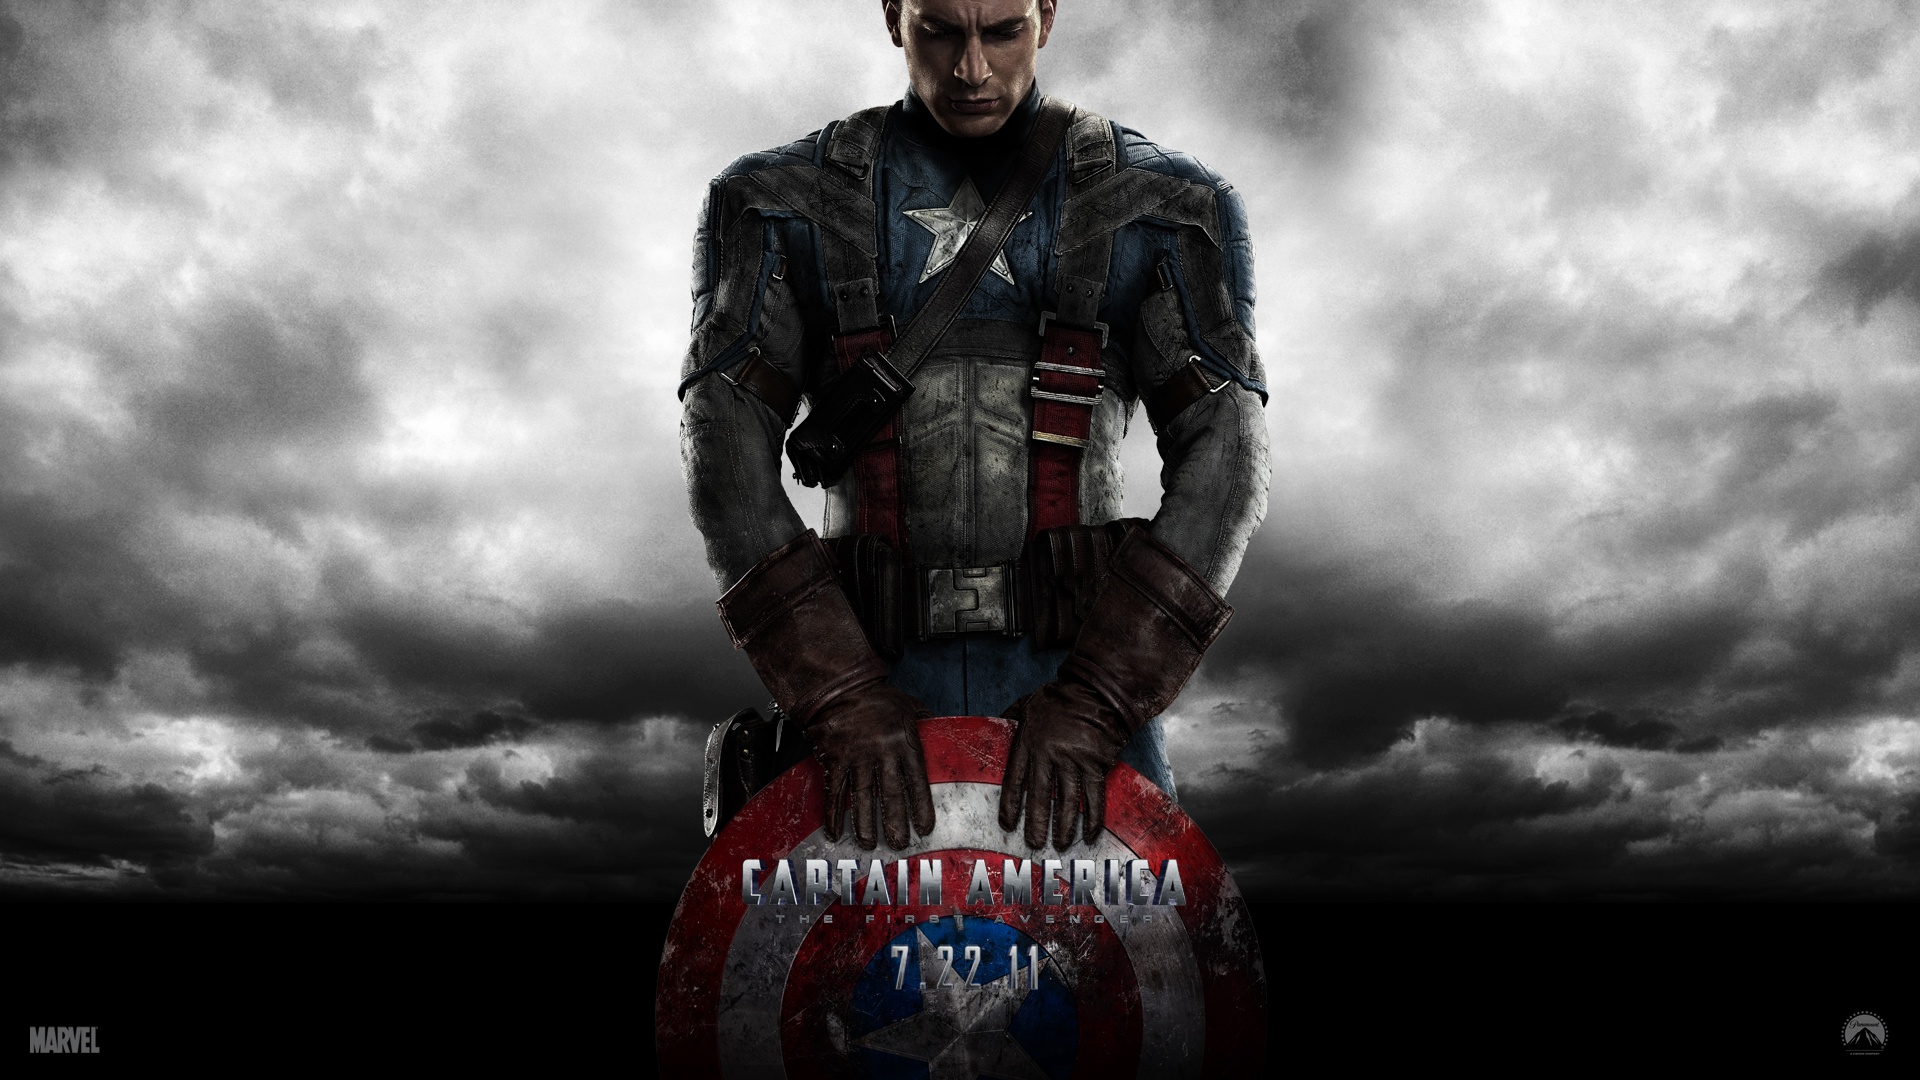 Captain America First Avenger Wallpapers HD Wallpapers 1920x1080